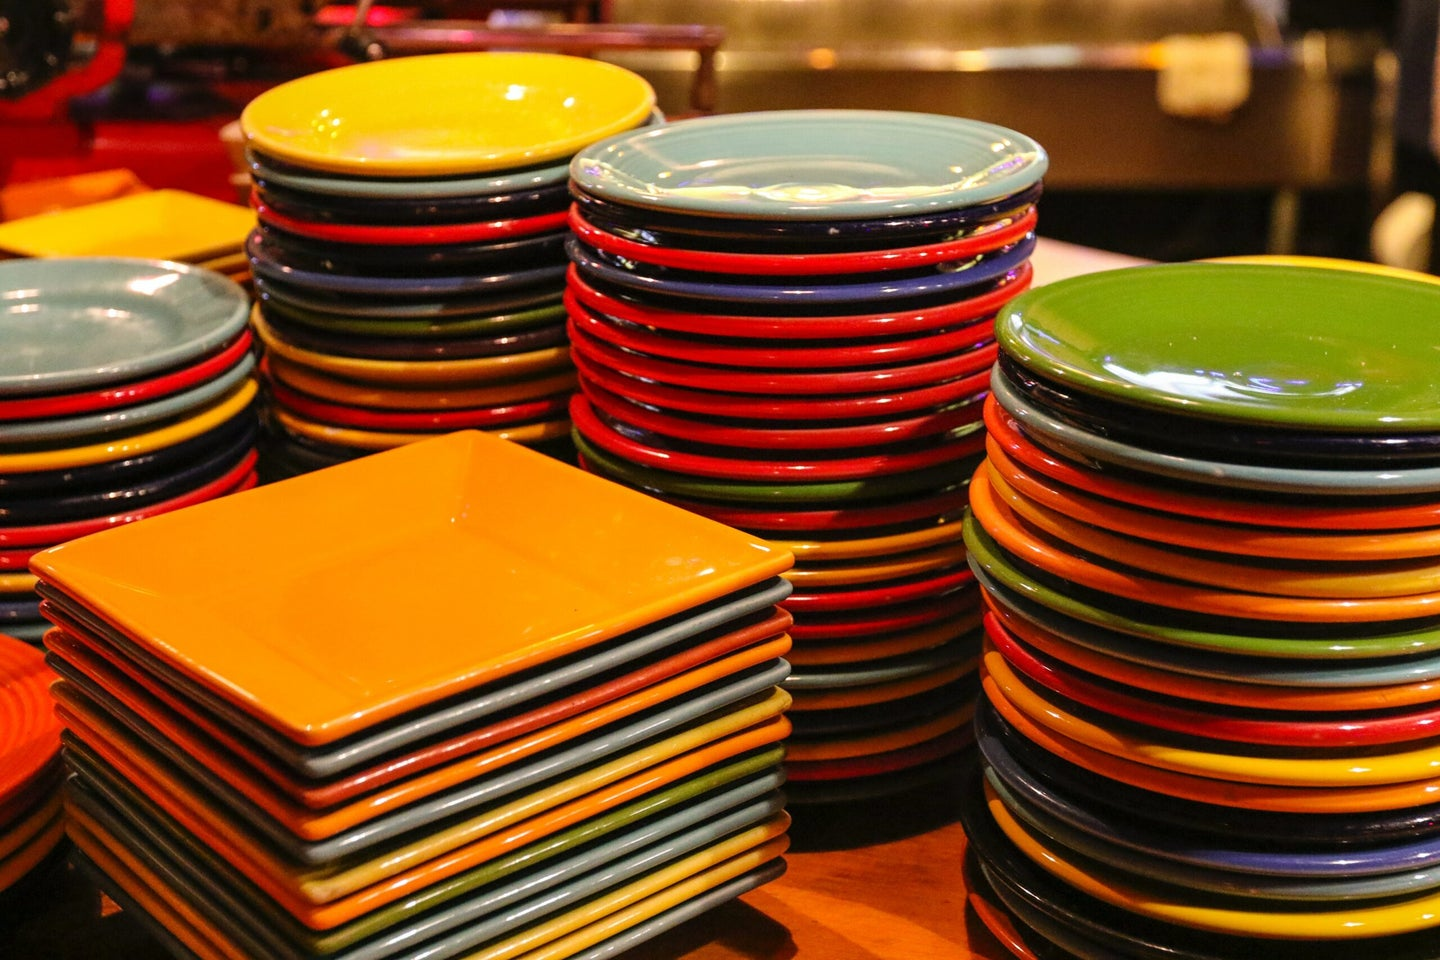 round and square plates of every color stacked on a table